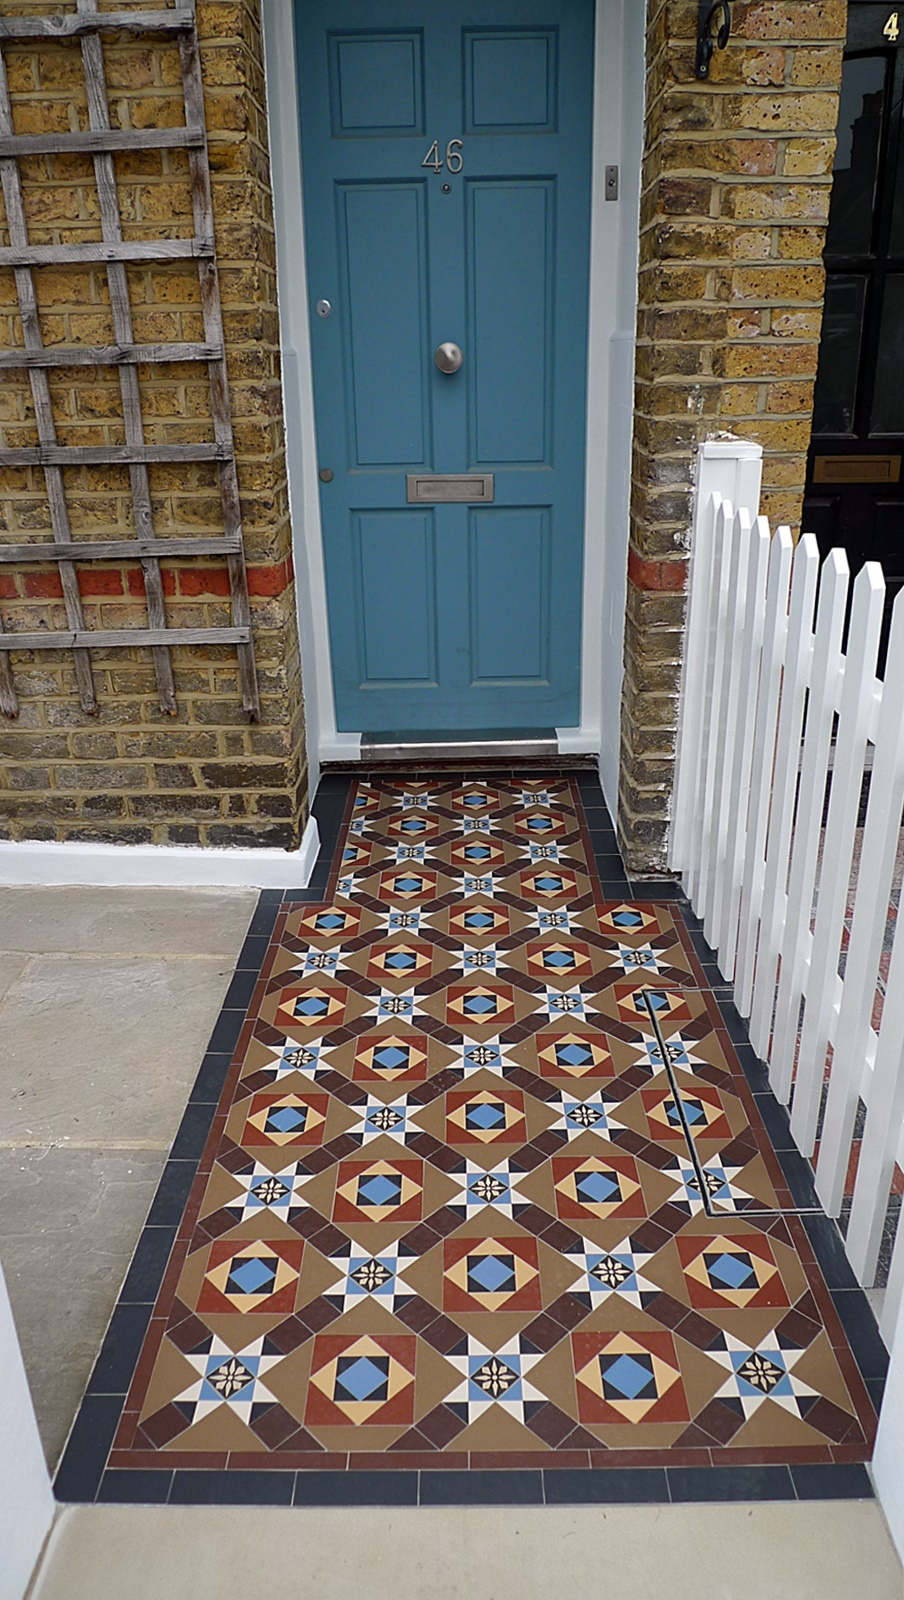 bowood 50 victroian mosaic tile path london front garden compnay anewgarden yorkstone paving picket fence wandsworth chelsea fulham kensington london